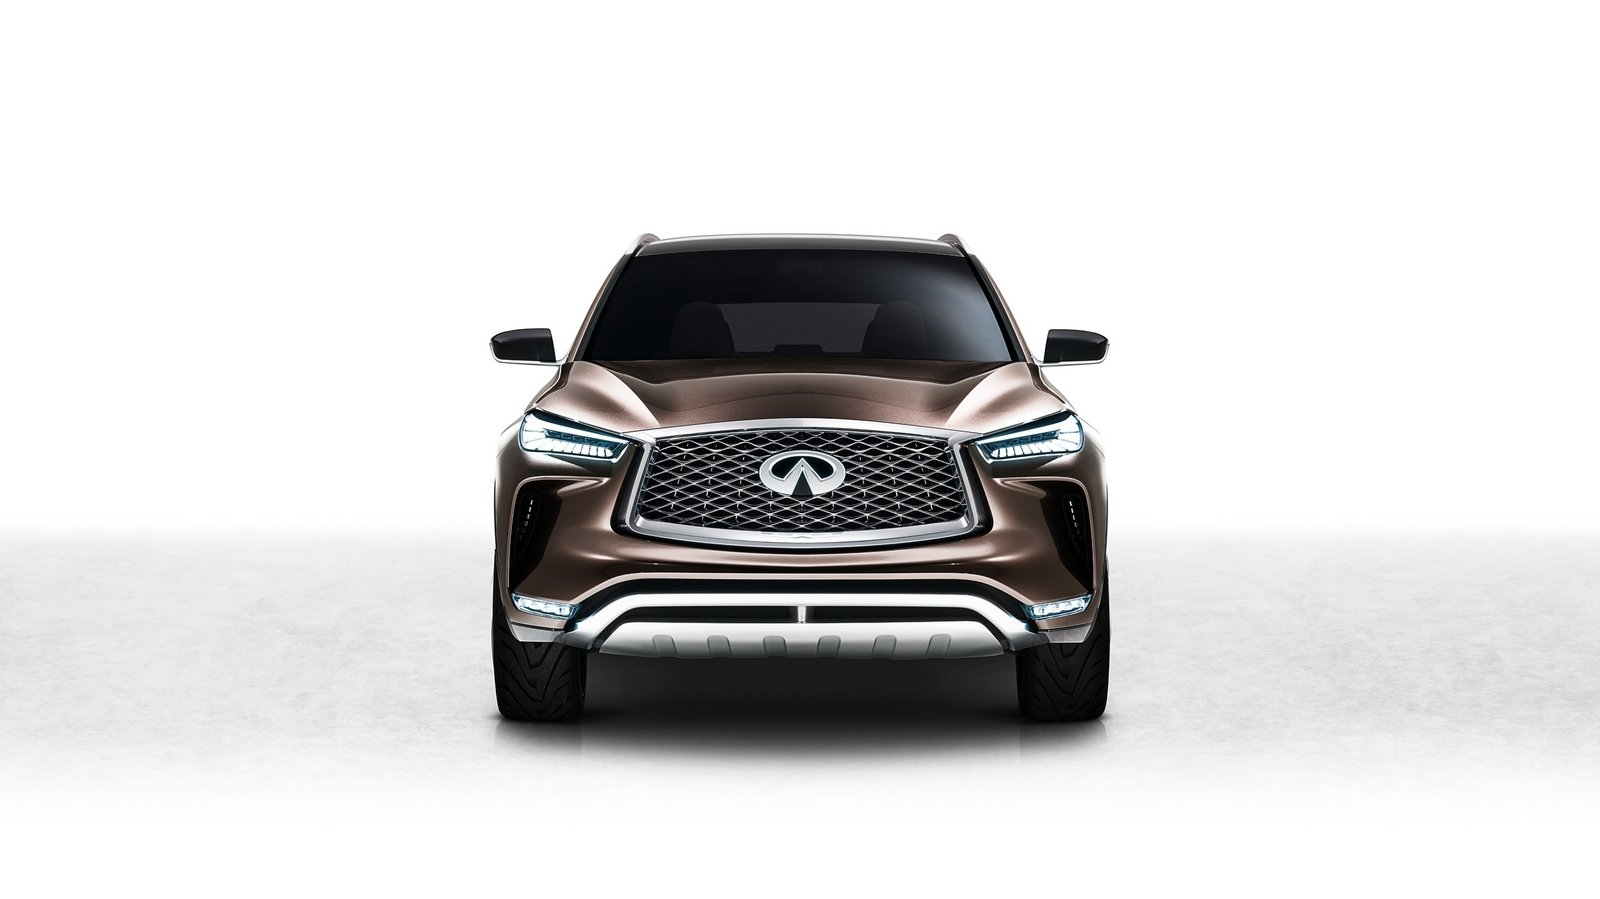 2017 infiniti qx50 concept picture 702060 car review top speed. Black Bedroom Furniture Sets. Home Design Ideas